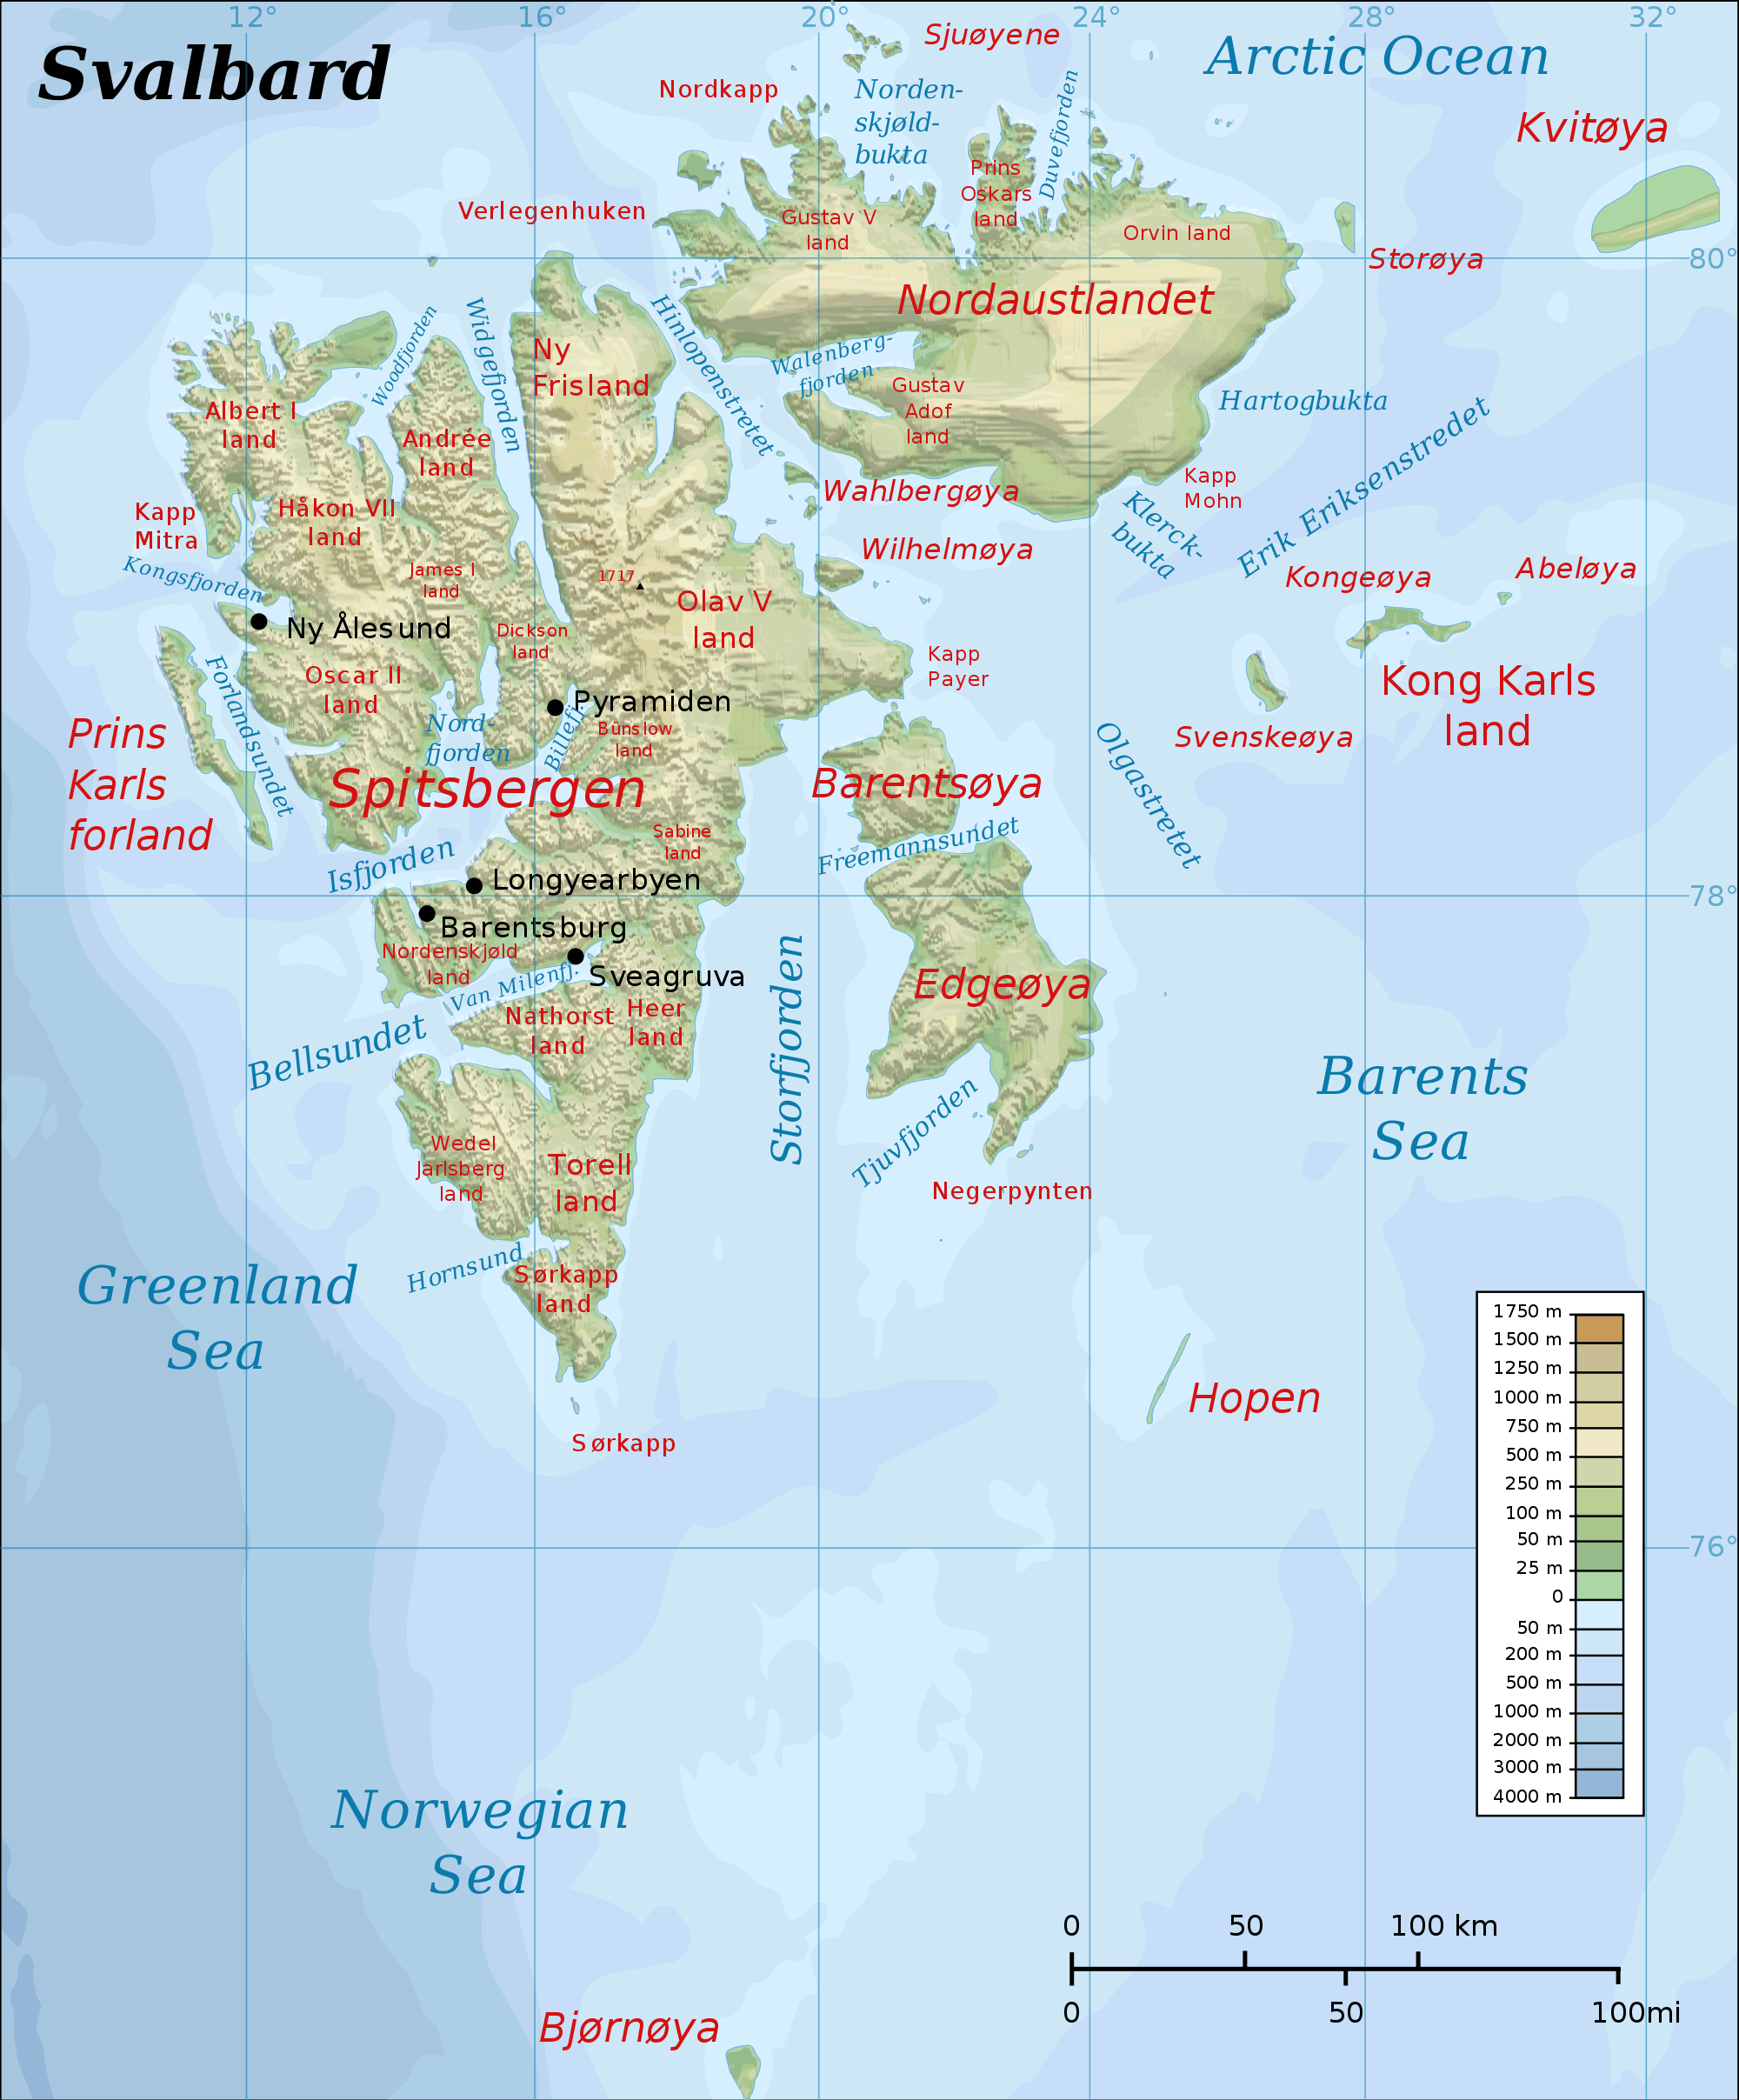 Topographic Map of Svalbard